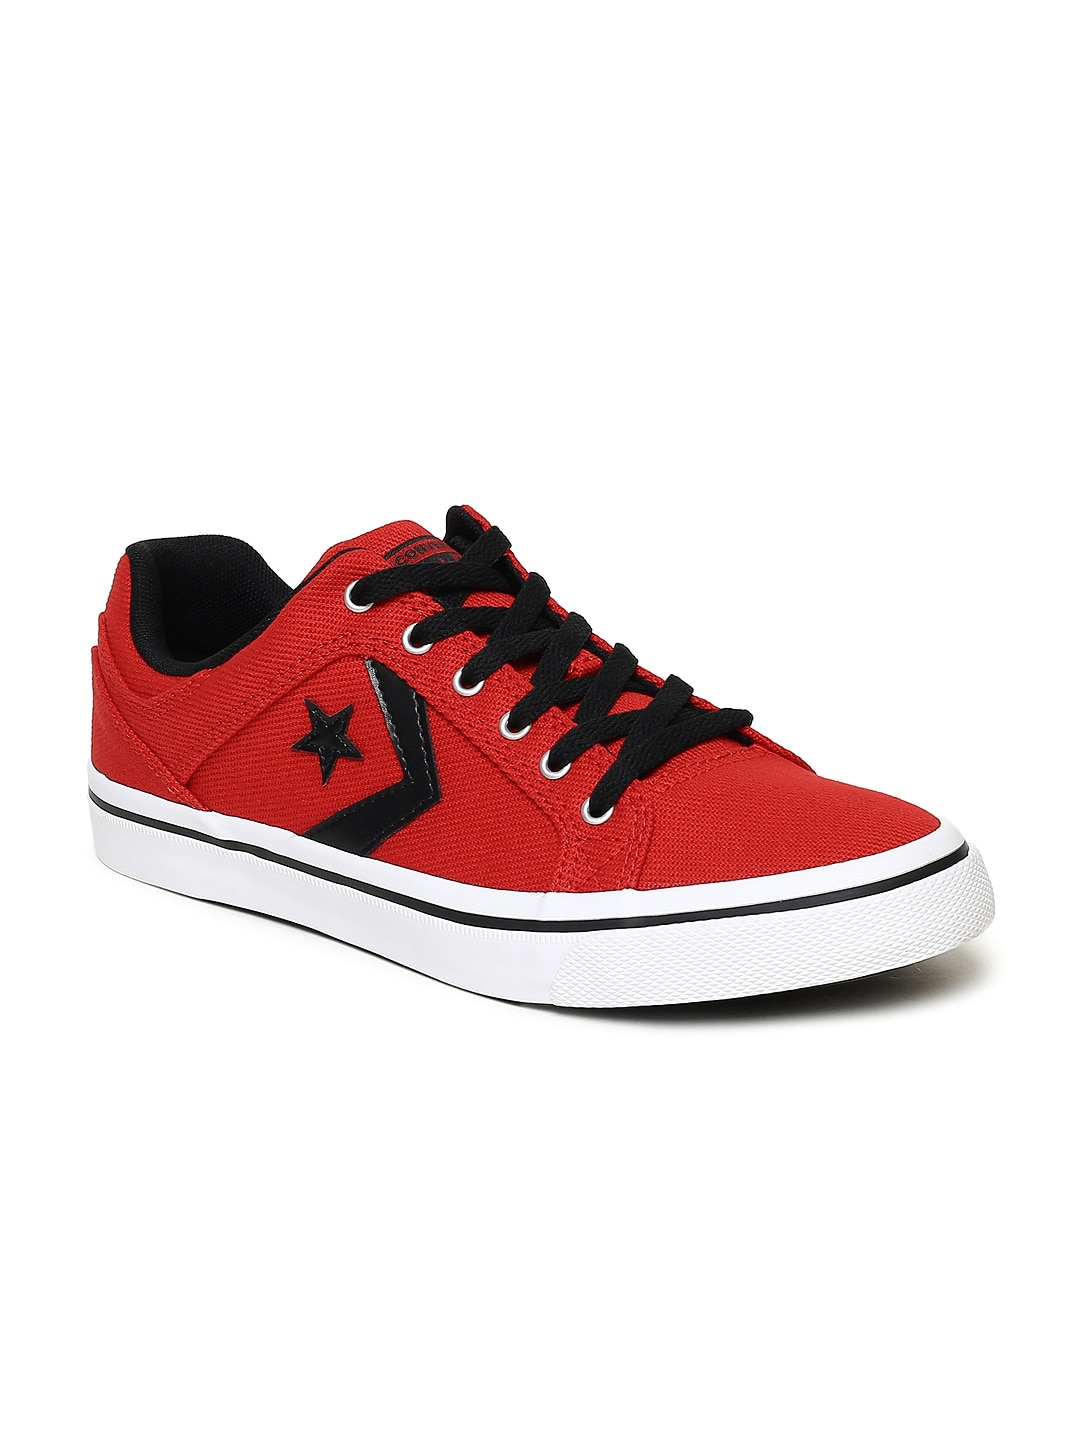 a56e25ba7701 Converse - Buy Converse Shoes   Clothing Online